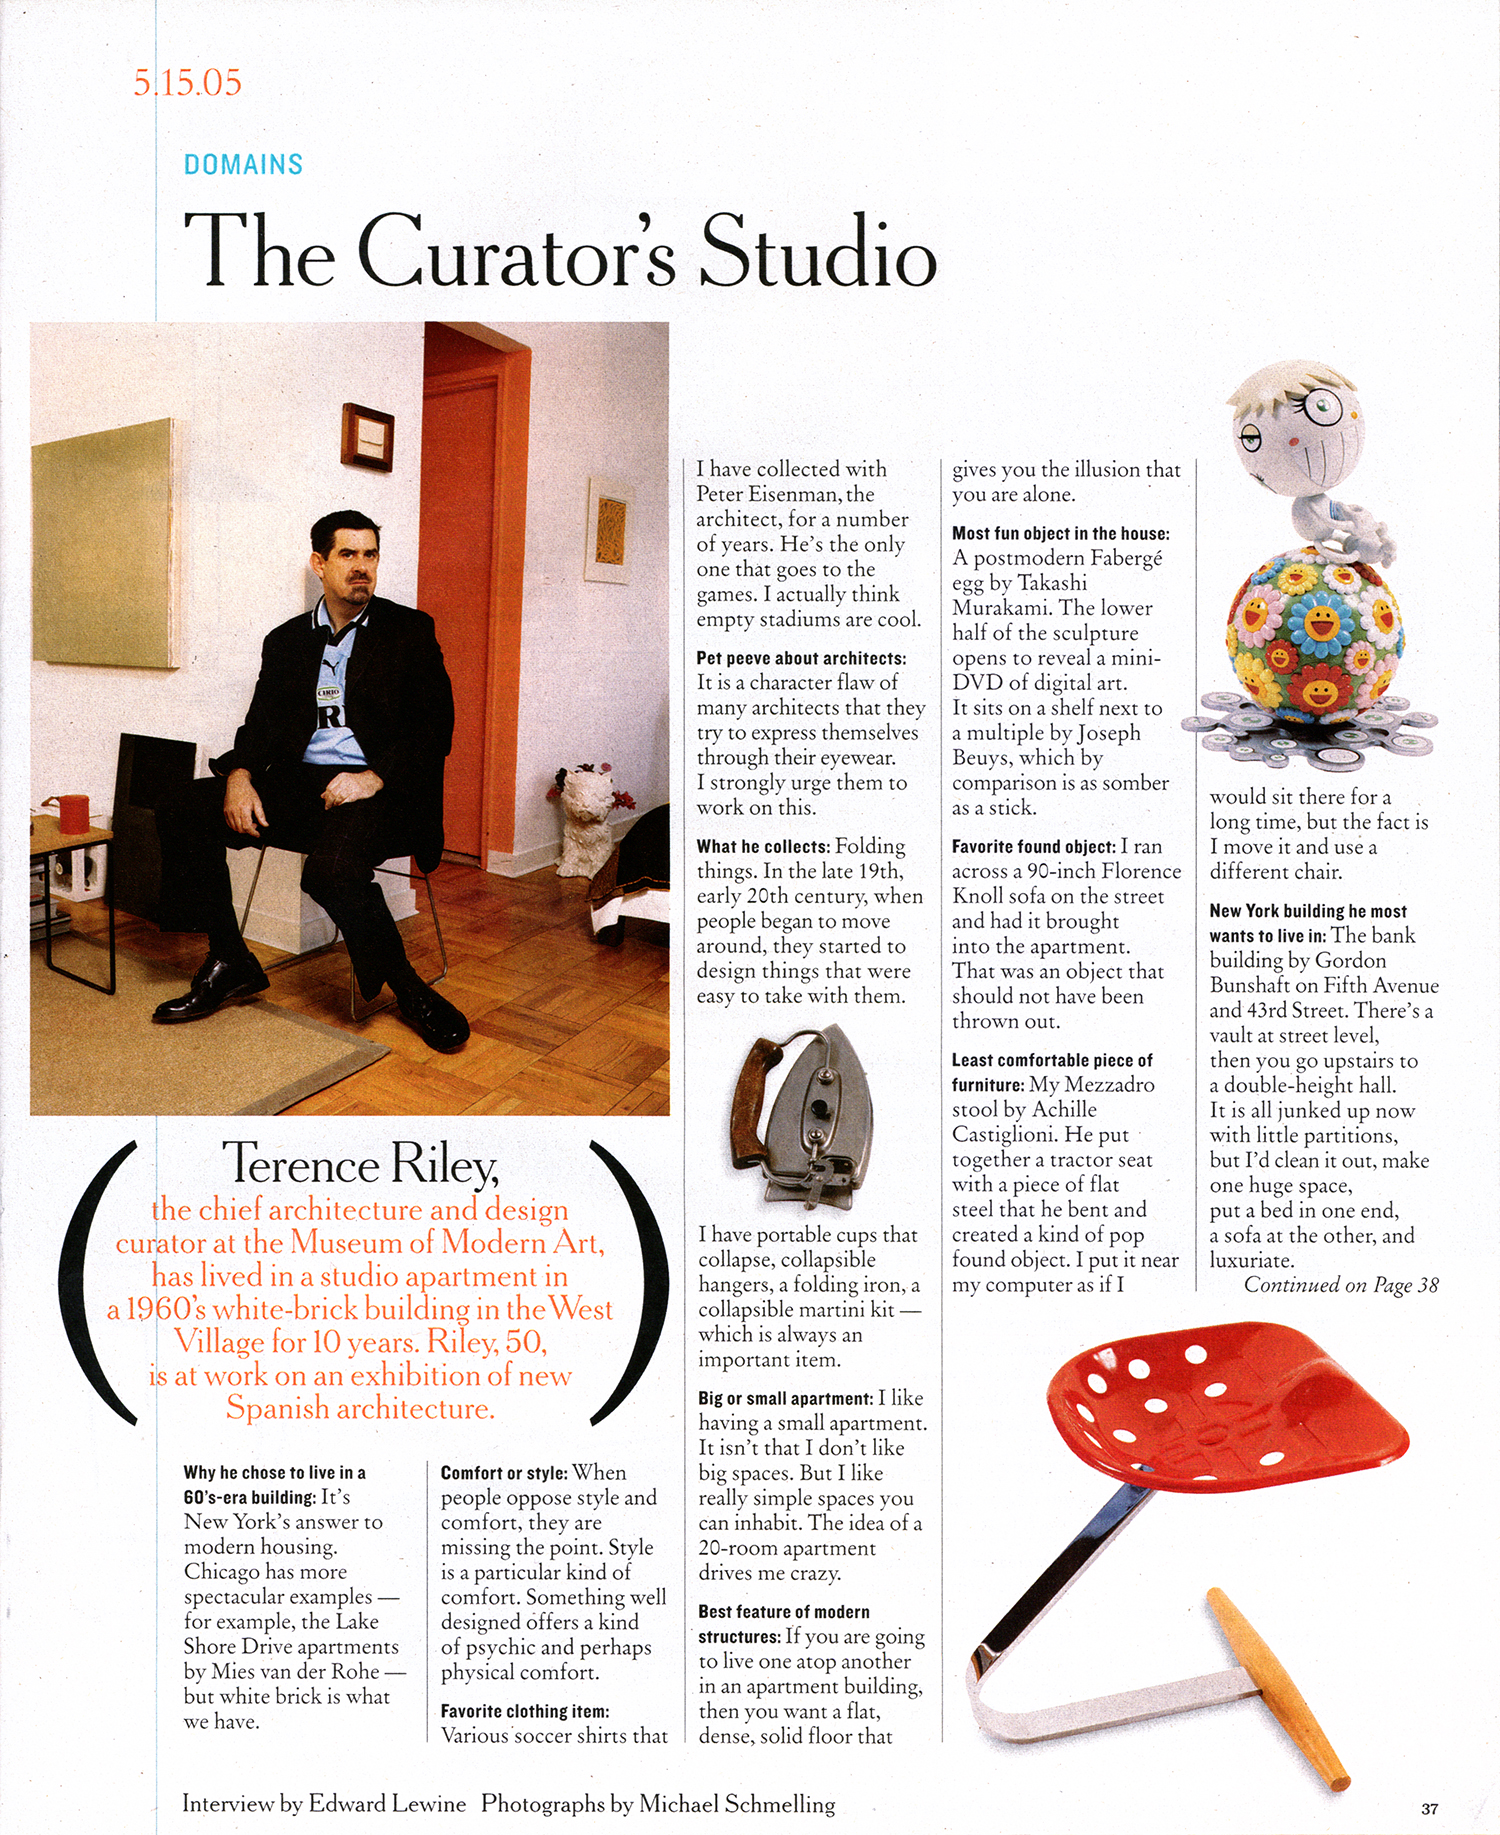 """The New York Times Magazine features Terrence Riley, Curator of Architecture at the Museum of Modern Art in, """"The Curators Studio""""."""